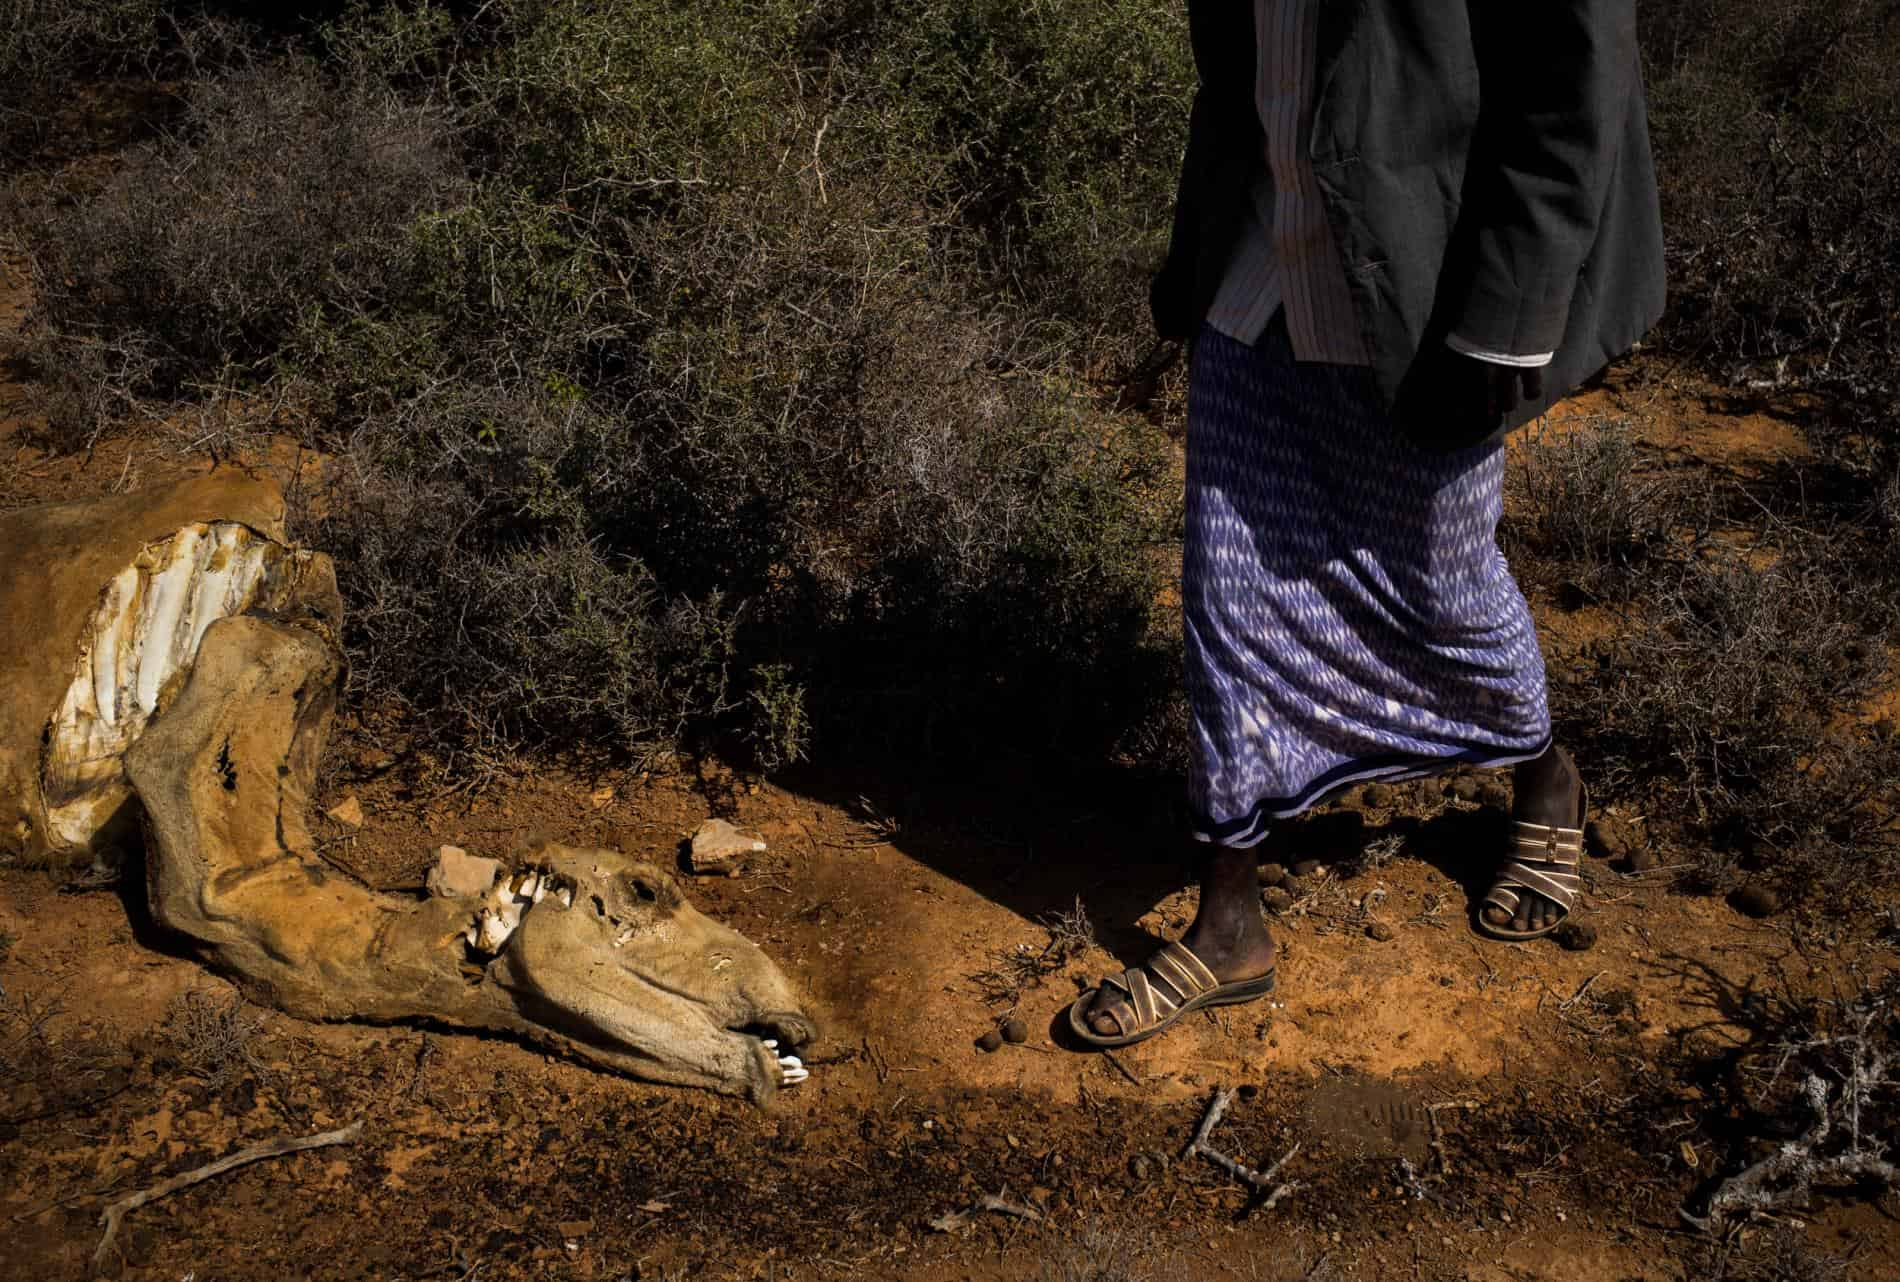 A village elder walks past a dead camel near Uusgure IDP camp, which holds 316 families who've come seeking respite from the drought. [Source: National Geographic]